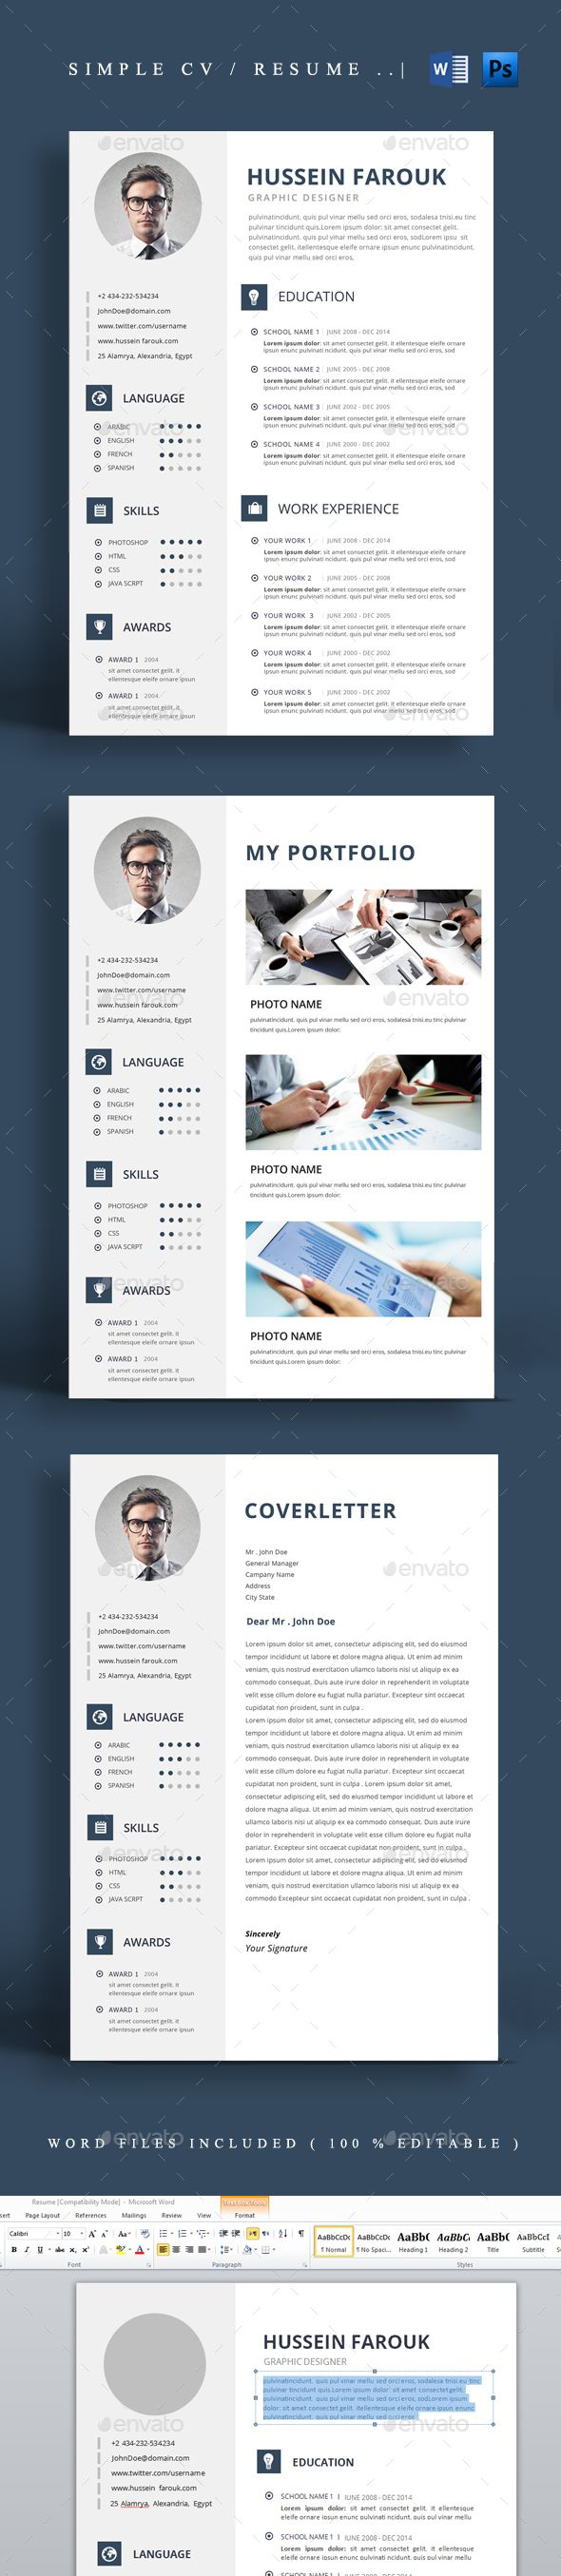 60 best Resume Template images on Pinterest | Editorial design ...